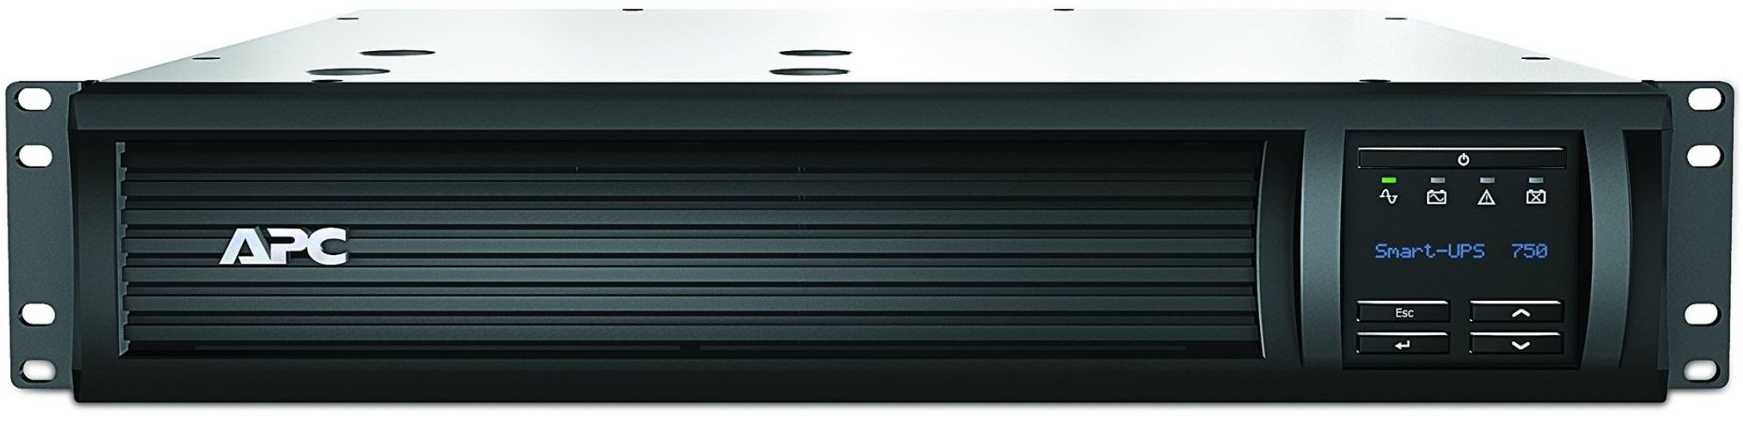 APC by Schneider Electric Smart-UPS SMX750INC Front